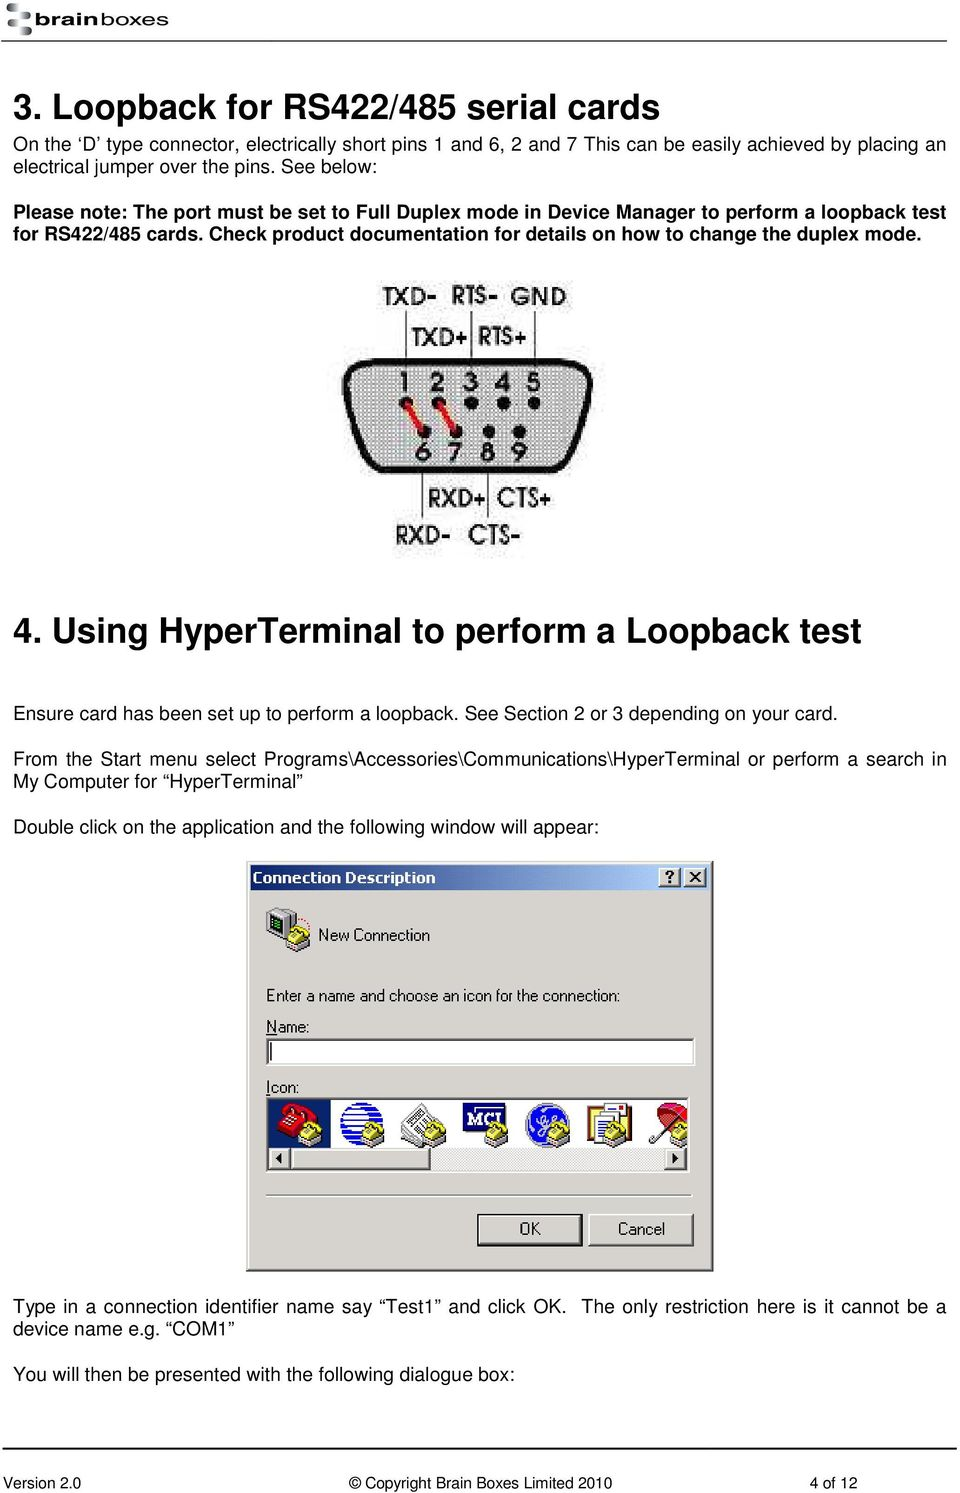 Instructions on How to Use HyperTerminal to Test Serial